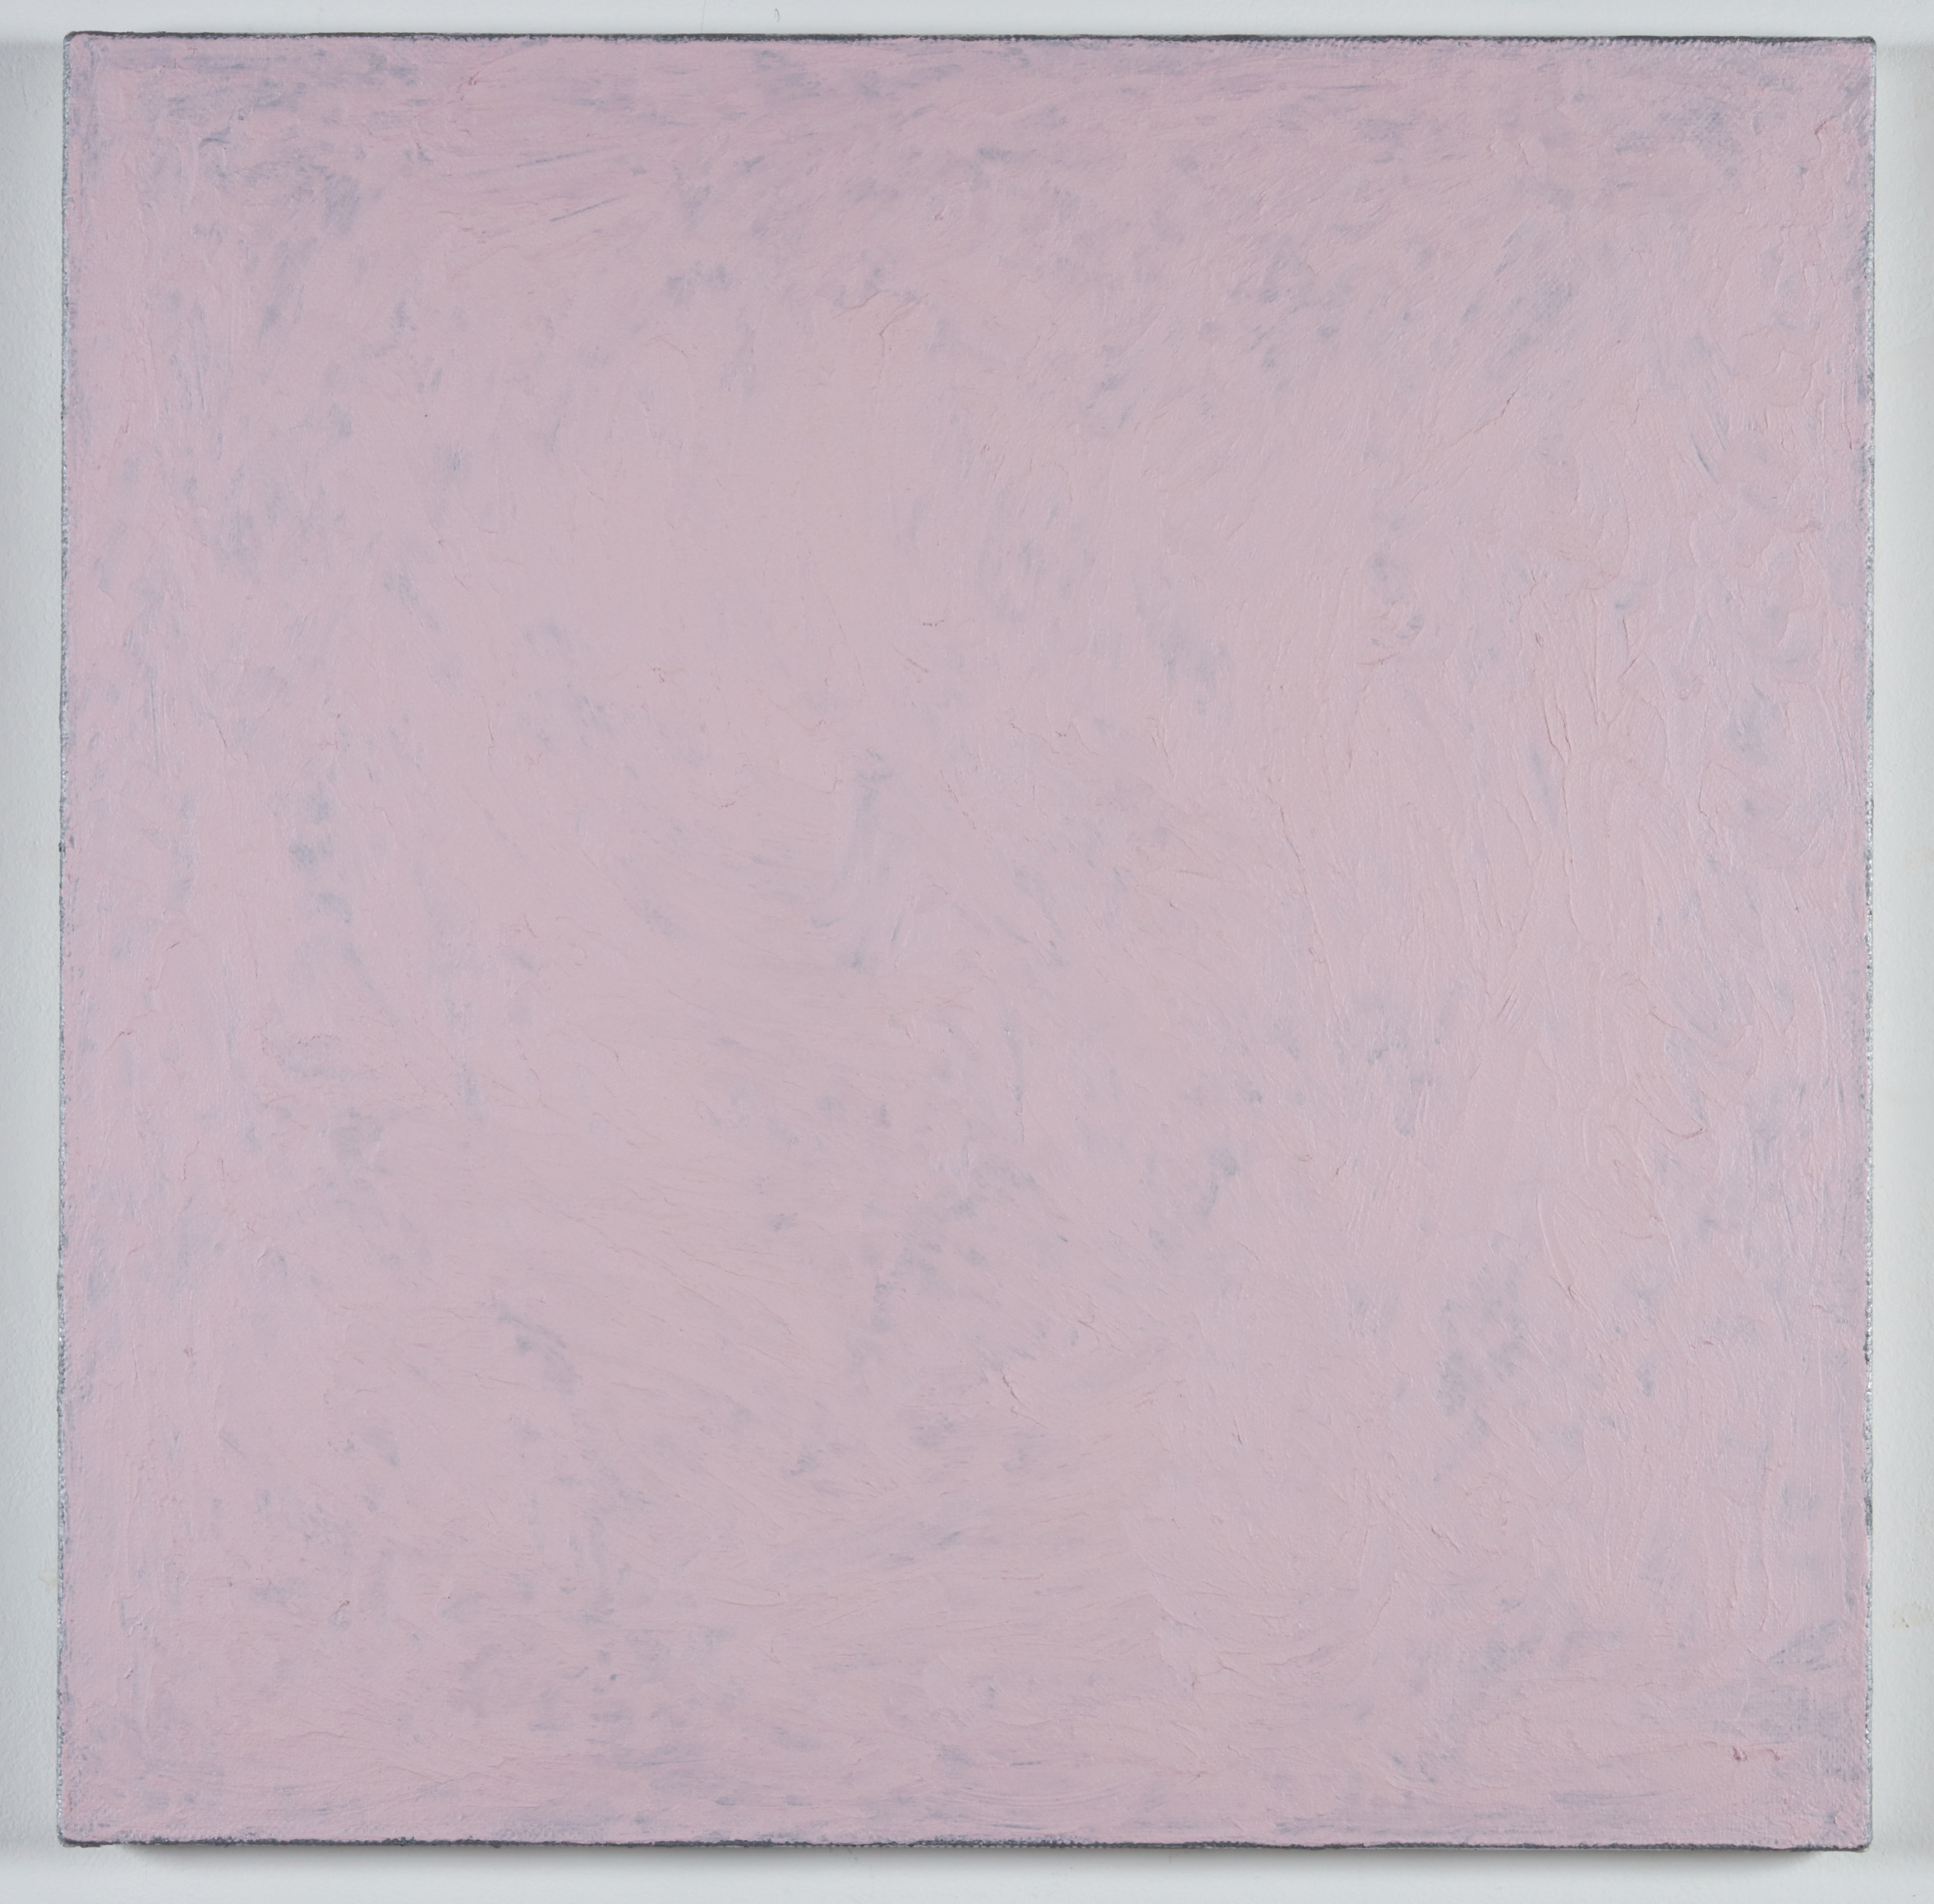 DAVID SERISIER  pink square painting , 2019 oil, wax and enamel on linen 84 x 84 cm